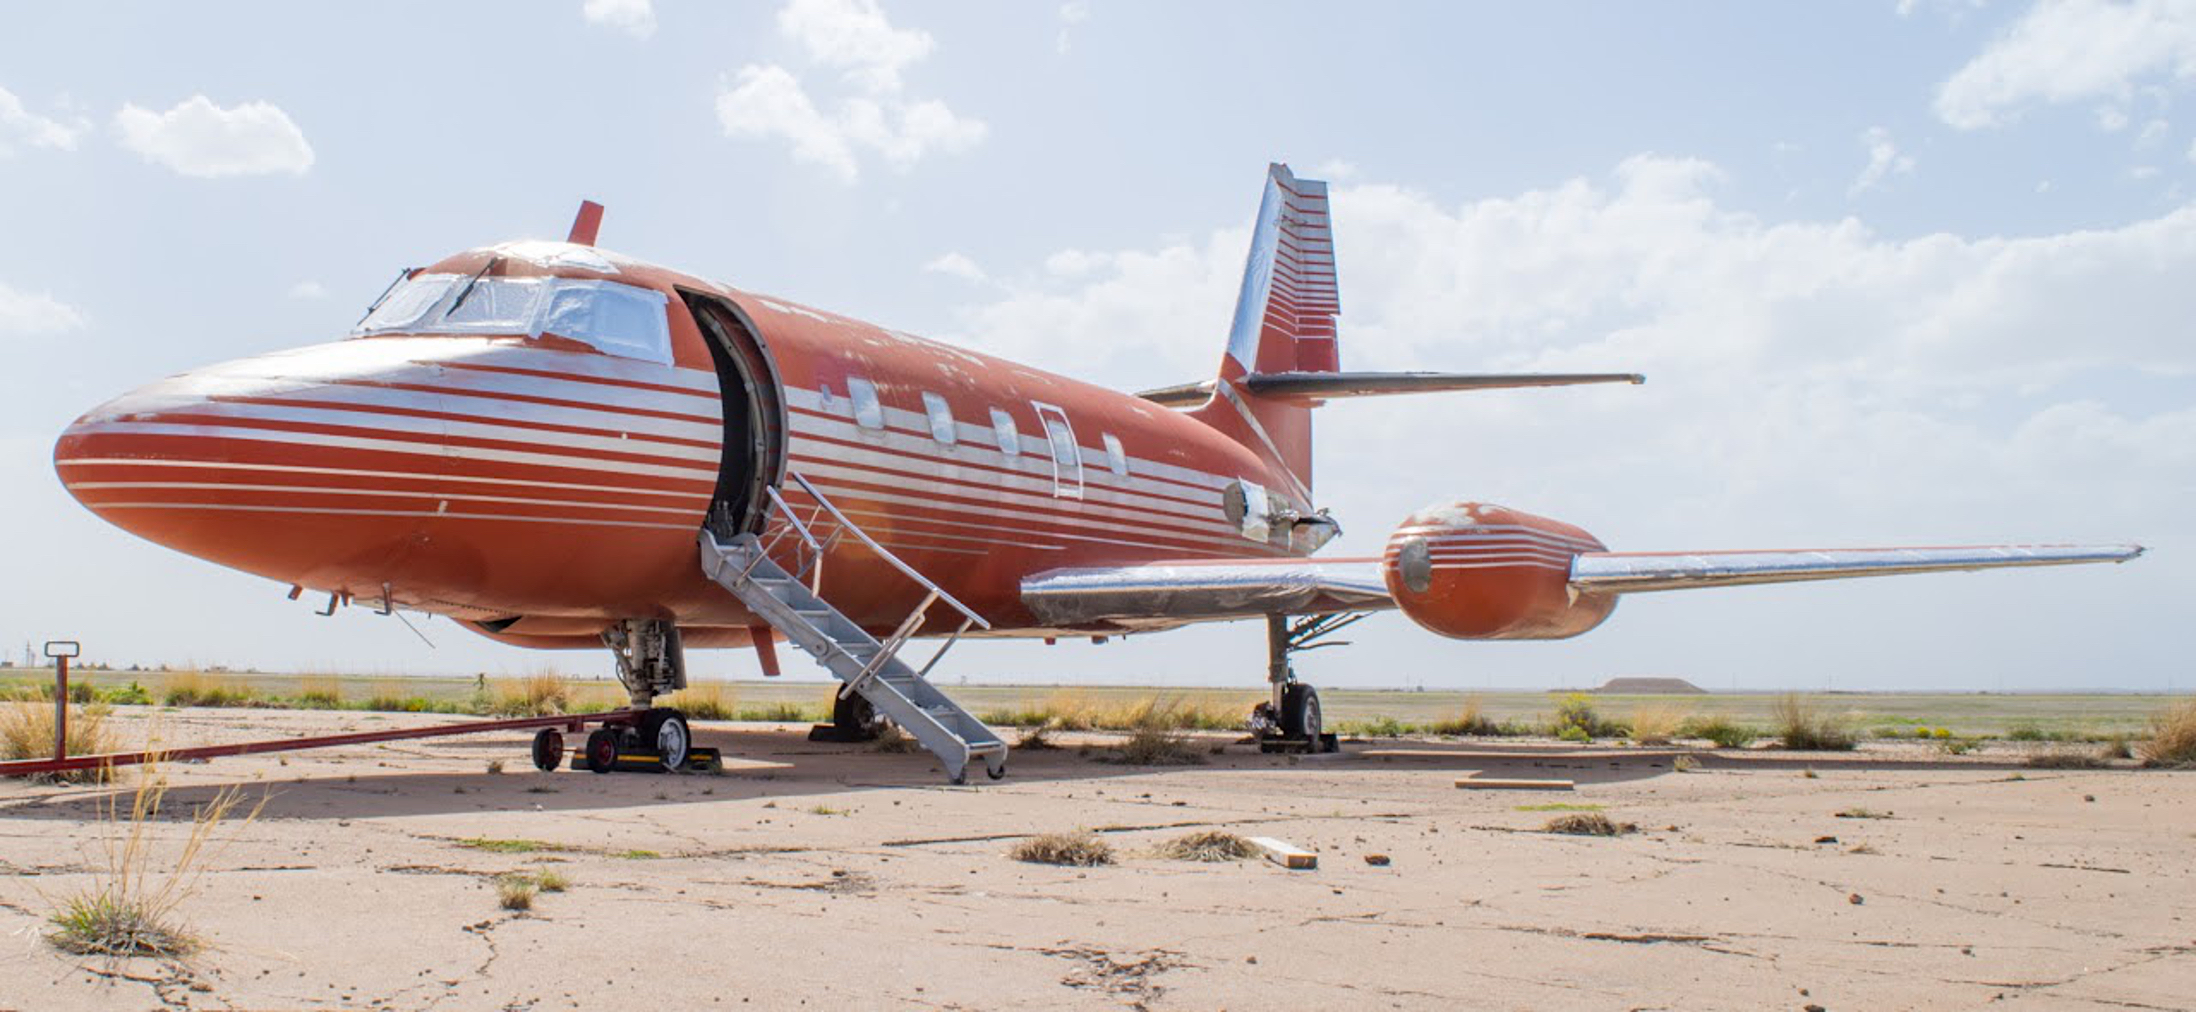 Elvis Private Jet up for auction